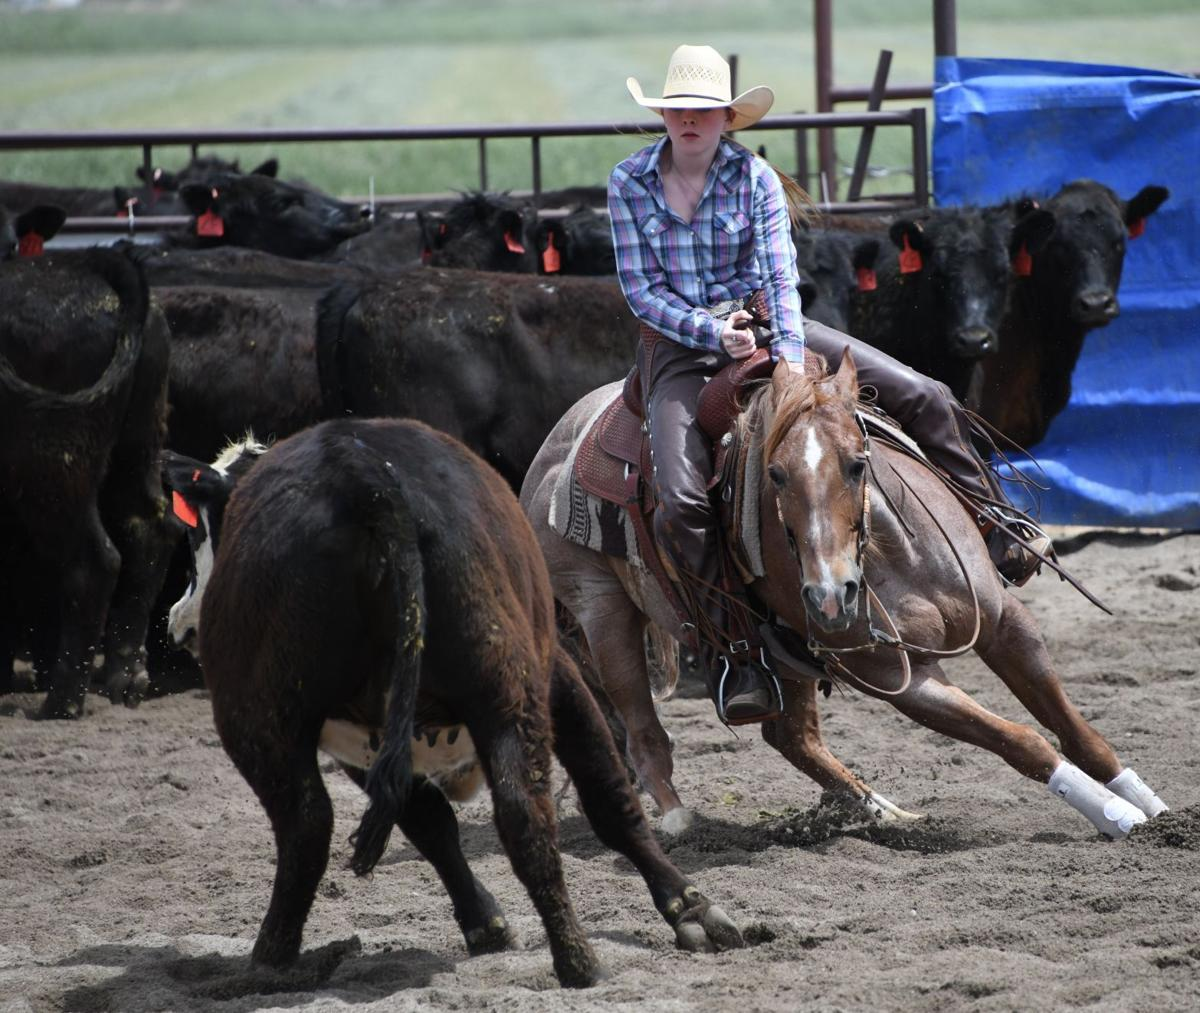 HIGH SCHOOL NOTEBOOK: State rodeo may be headed back to Pocatello; plus more fans in the stands